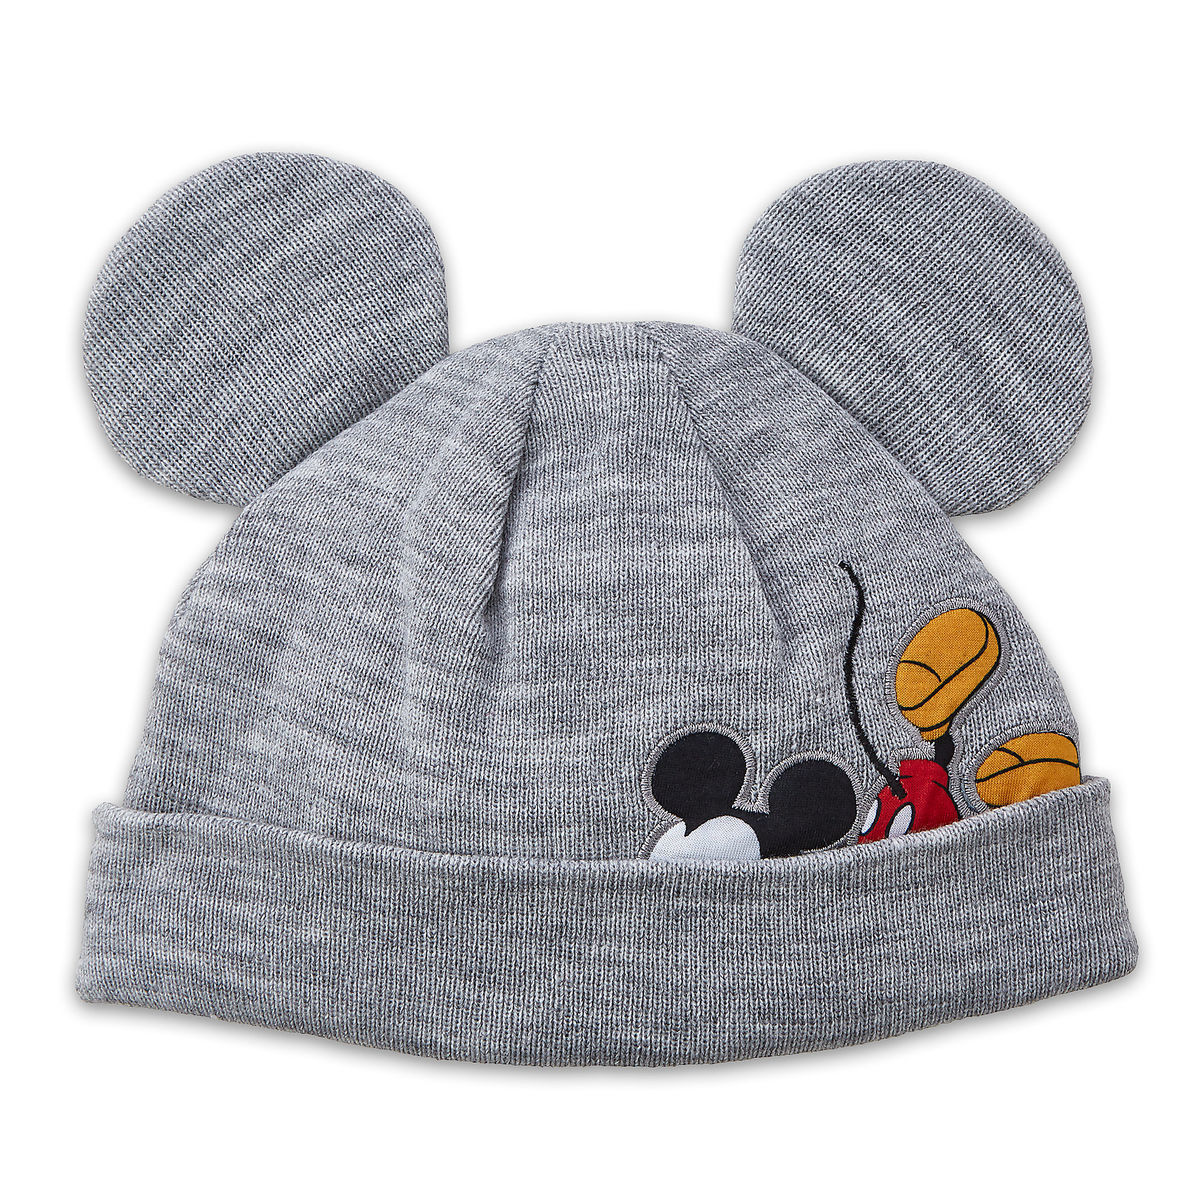 1da28acb828 Product Image of Mickey Mouse Knit Ear Beanie for Kids   1